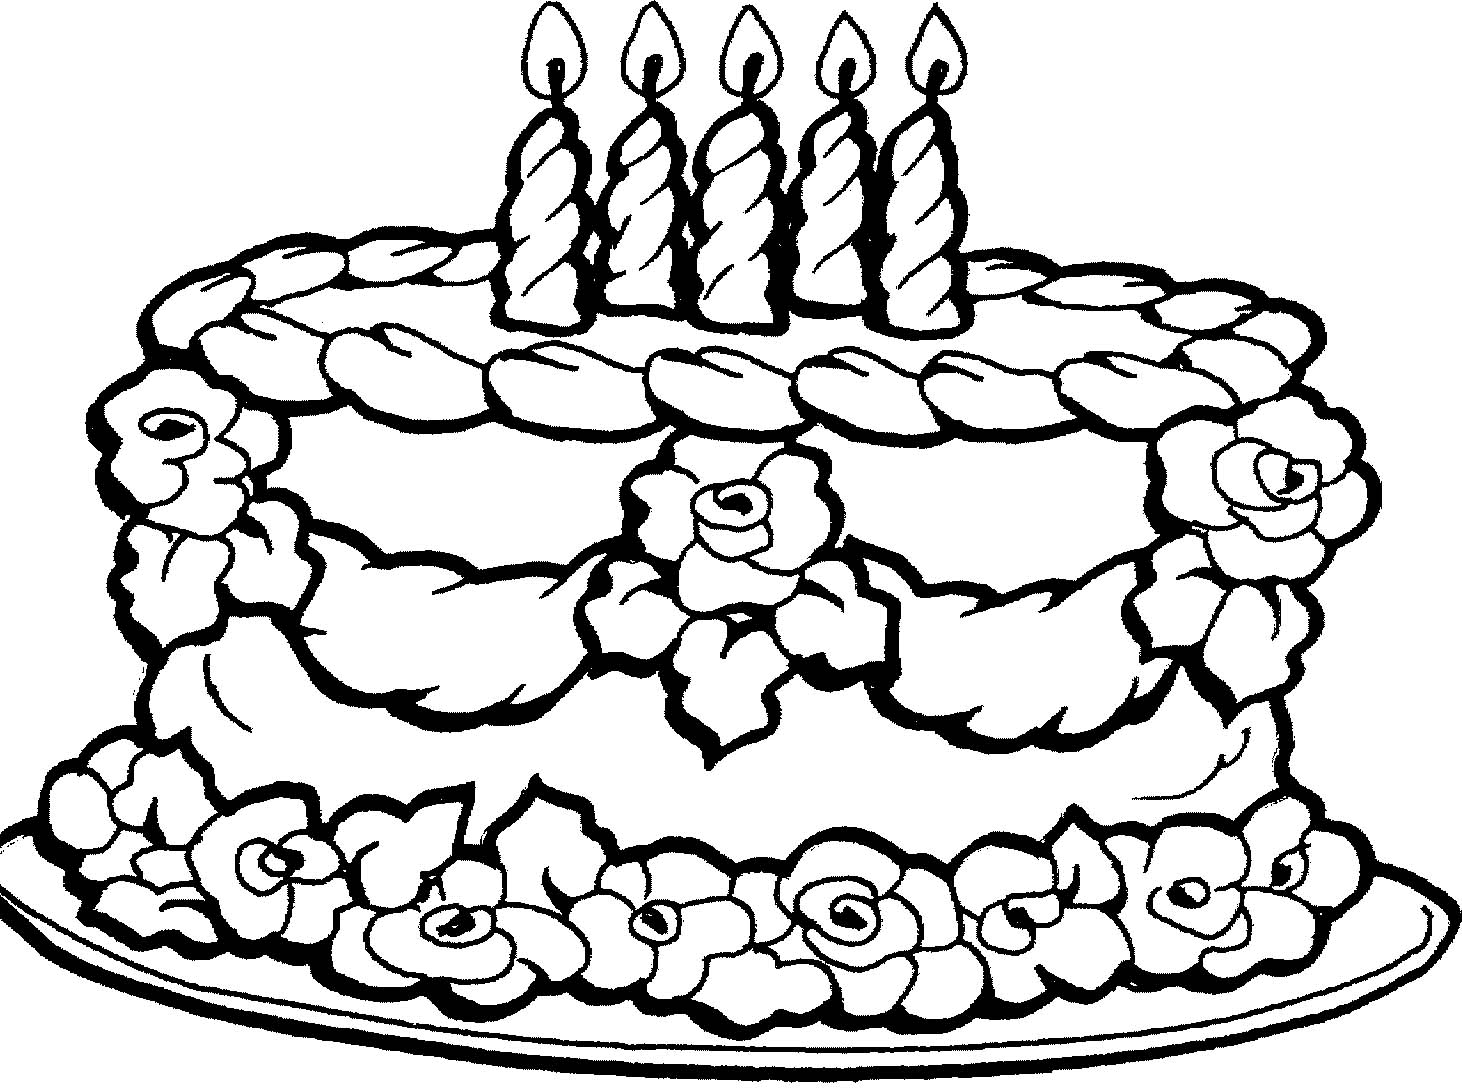 1462x1088 Cake Coloring Pages In Snazzy Draw Photo Printable Coloring